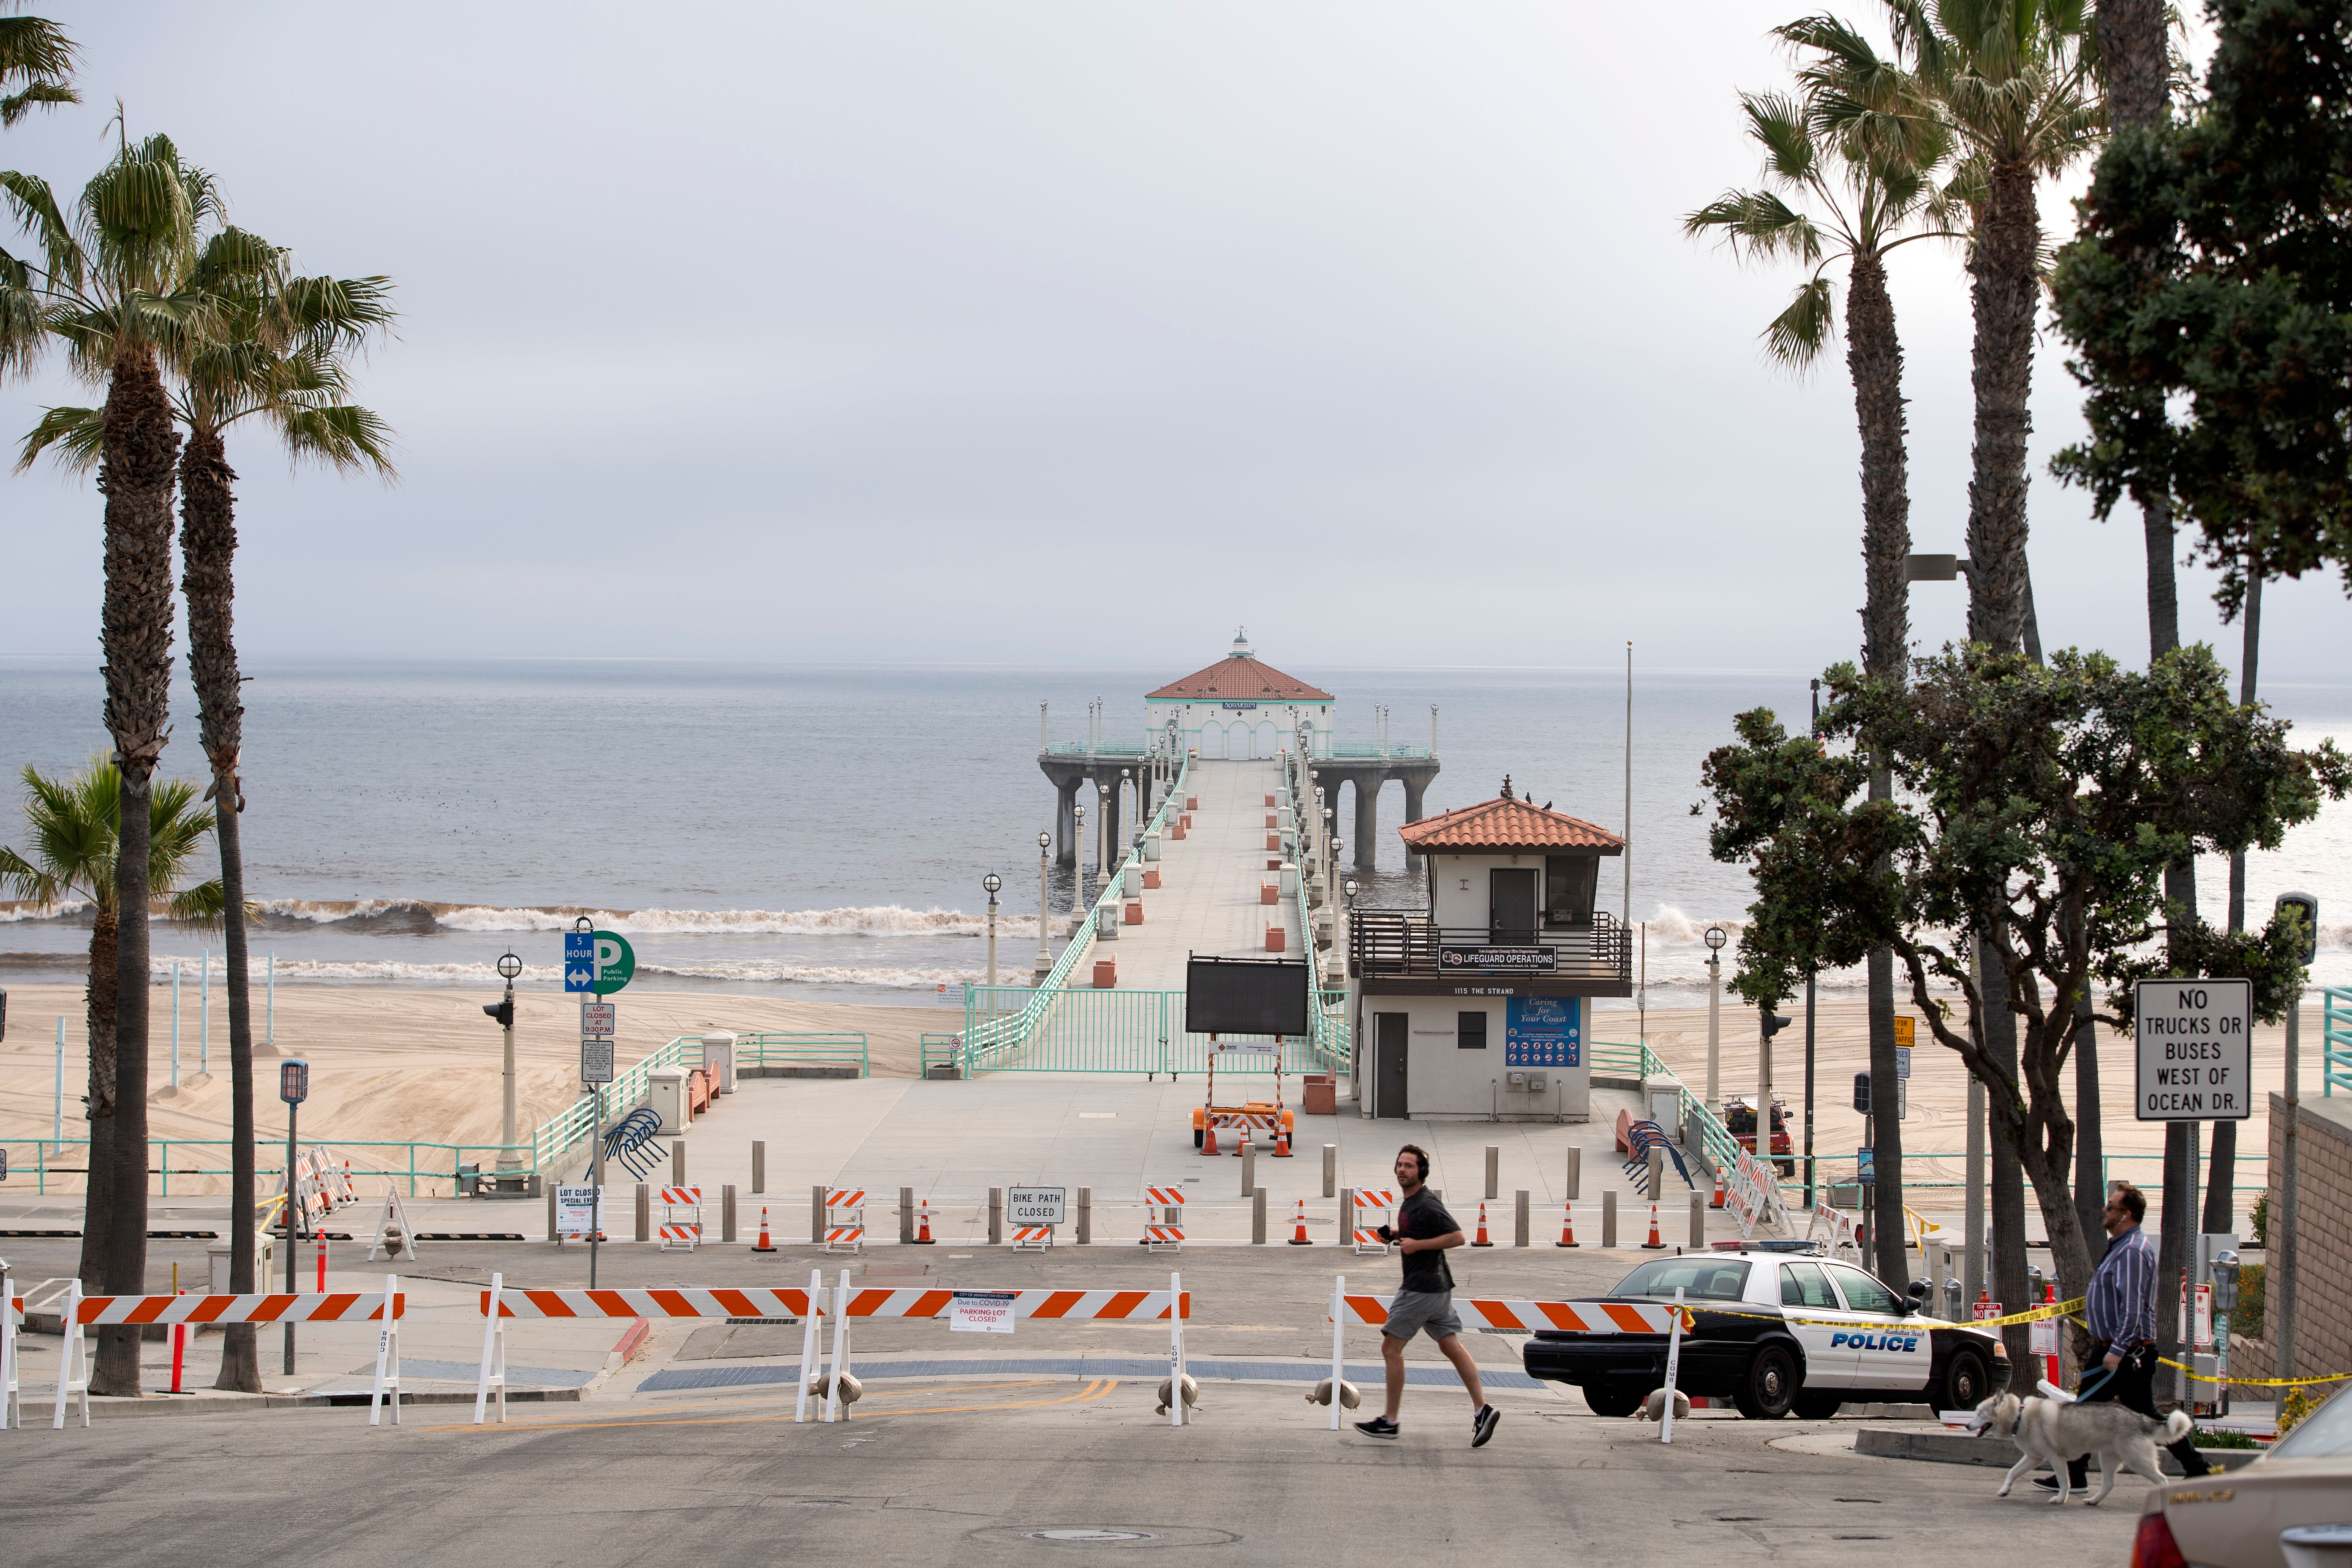 People walk by the closed pier, beach and strand amid the novel coronavirus pandemic on April 28, 2020, in Manhattan Beach, California. (Photo by VALERIE MACON/AFP via Getty Images)